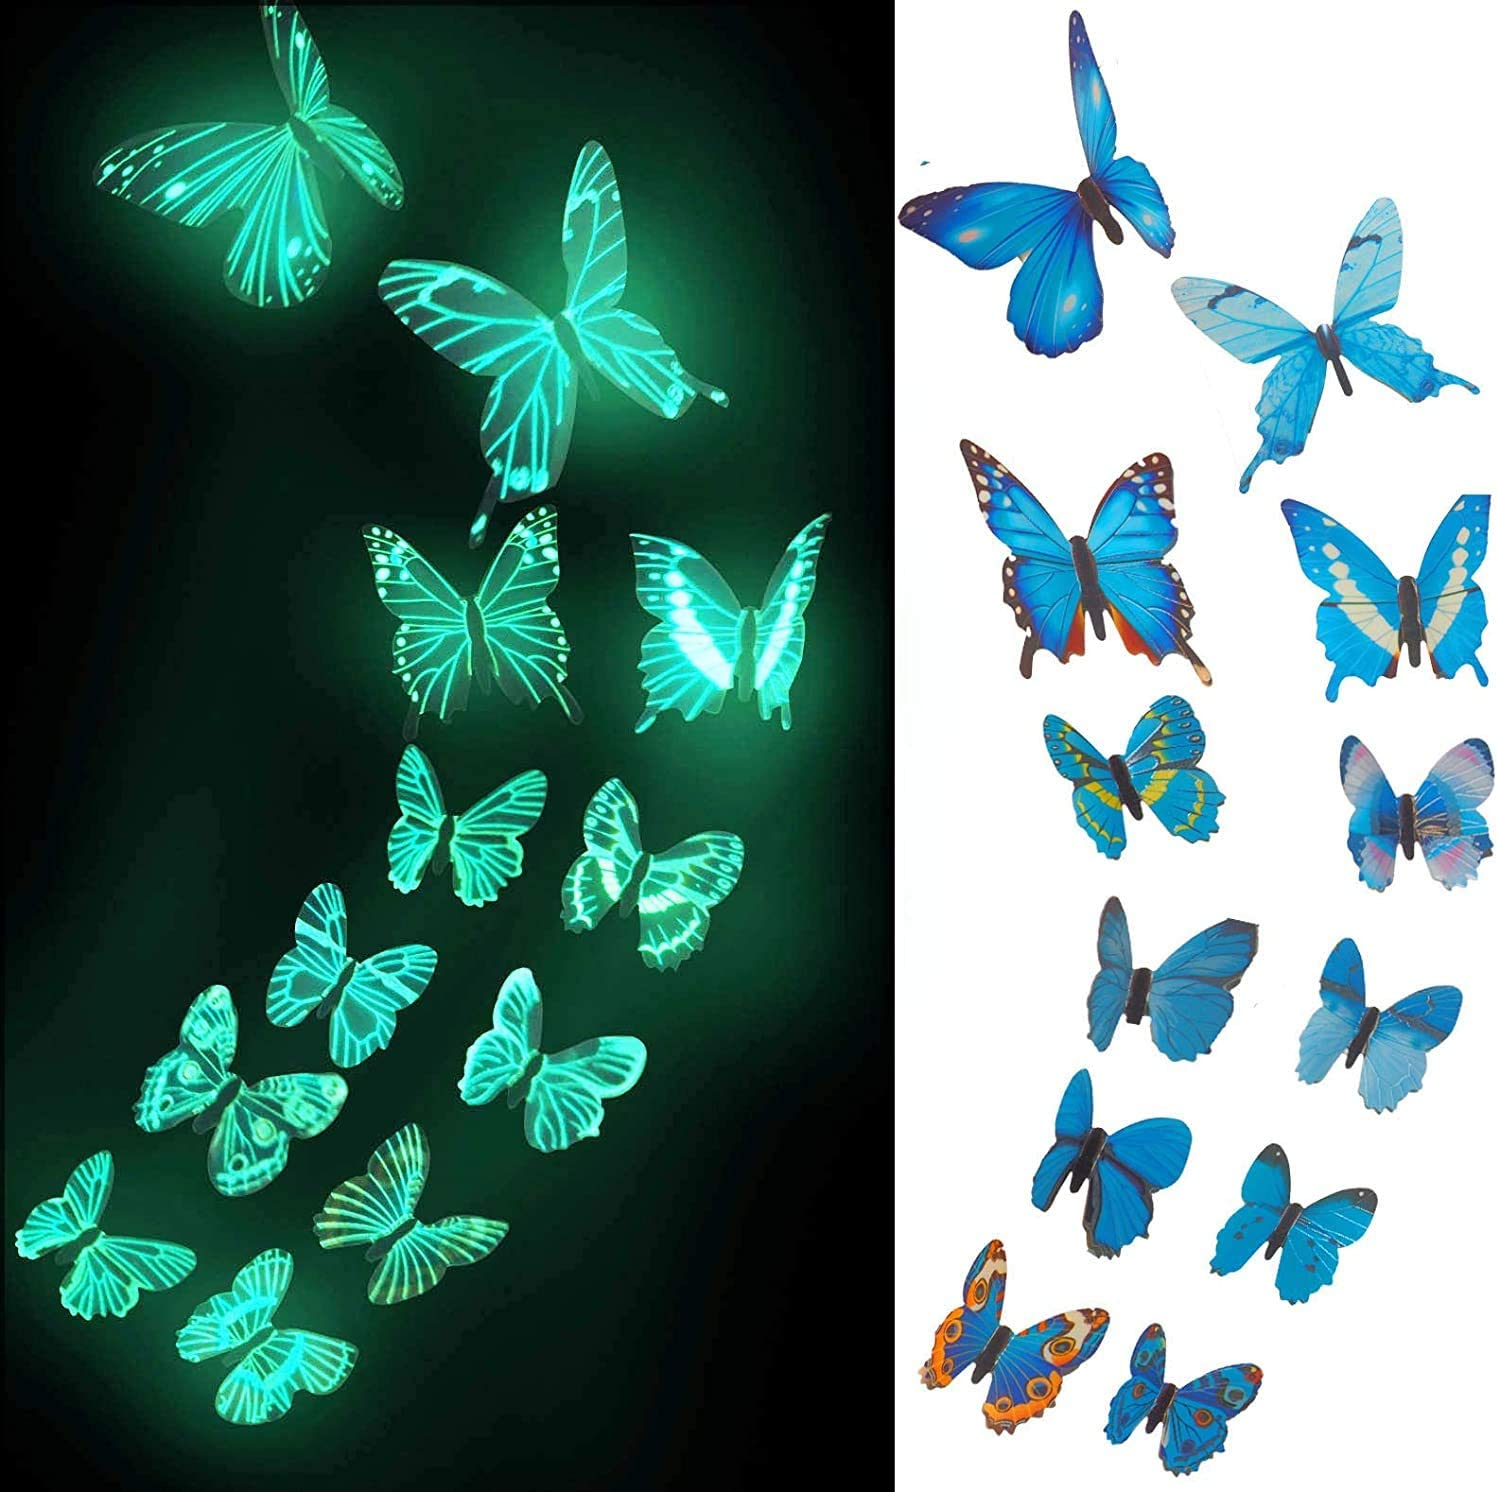 12PCS 3D Butterfly Decals, Glow in The Dark Butterfly Stickers for Ceiling or Wall Decals, Removable Refrigerator Magnets Stickers Decor for Kids Room Decoration Home and Bedroom Art Mural Blue